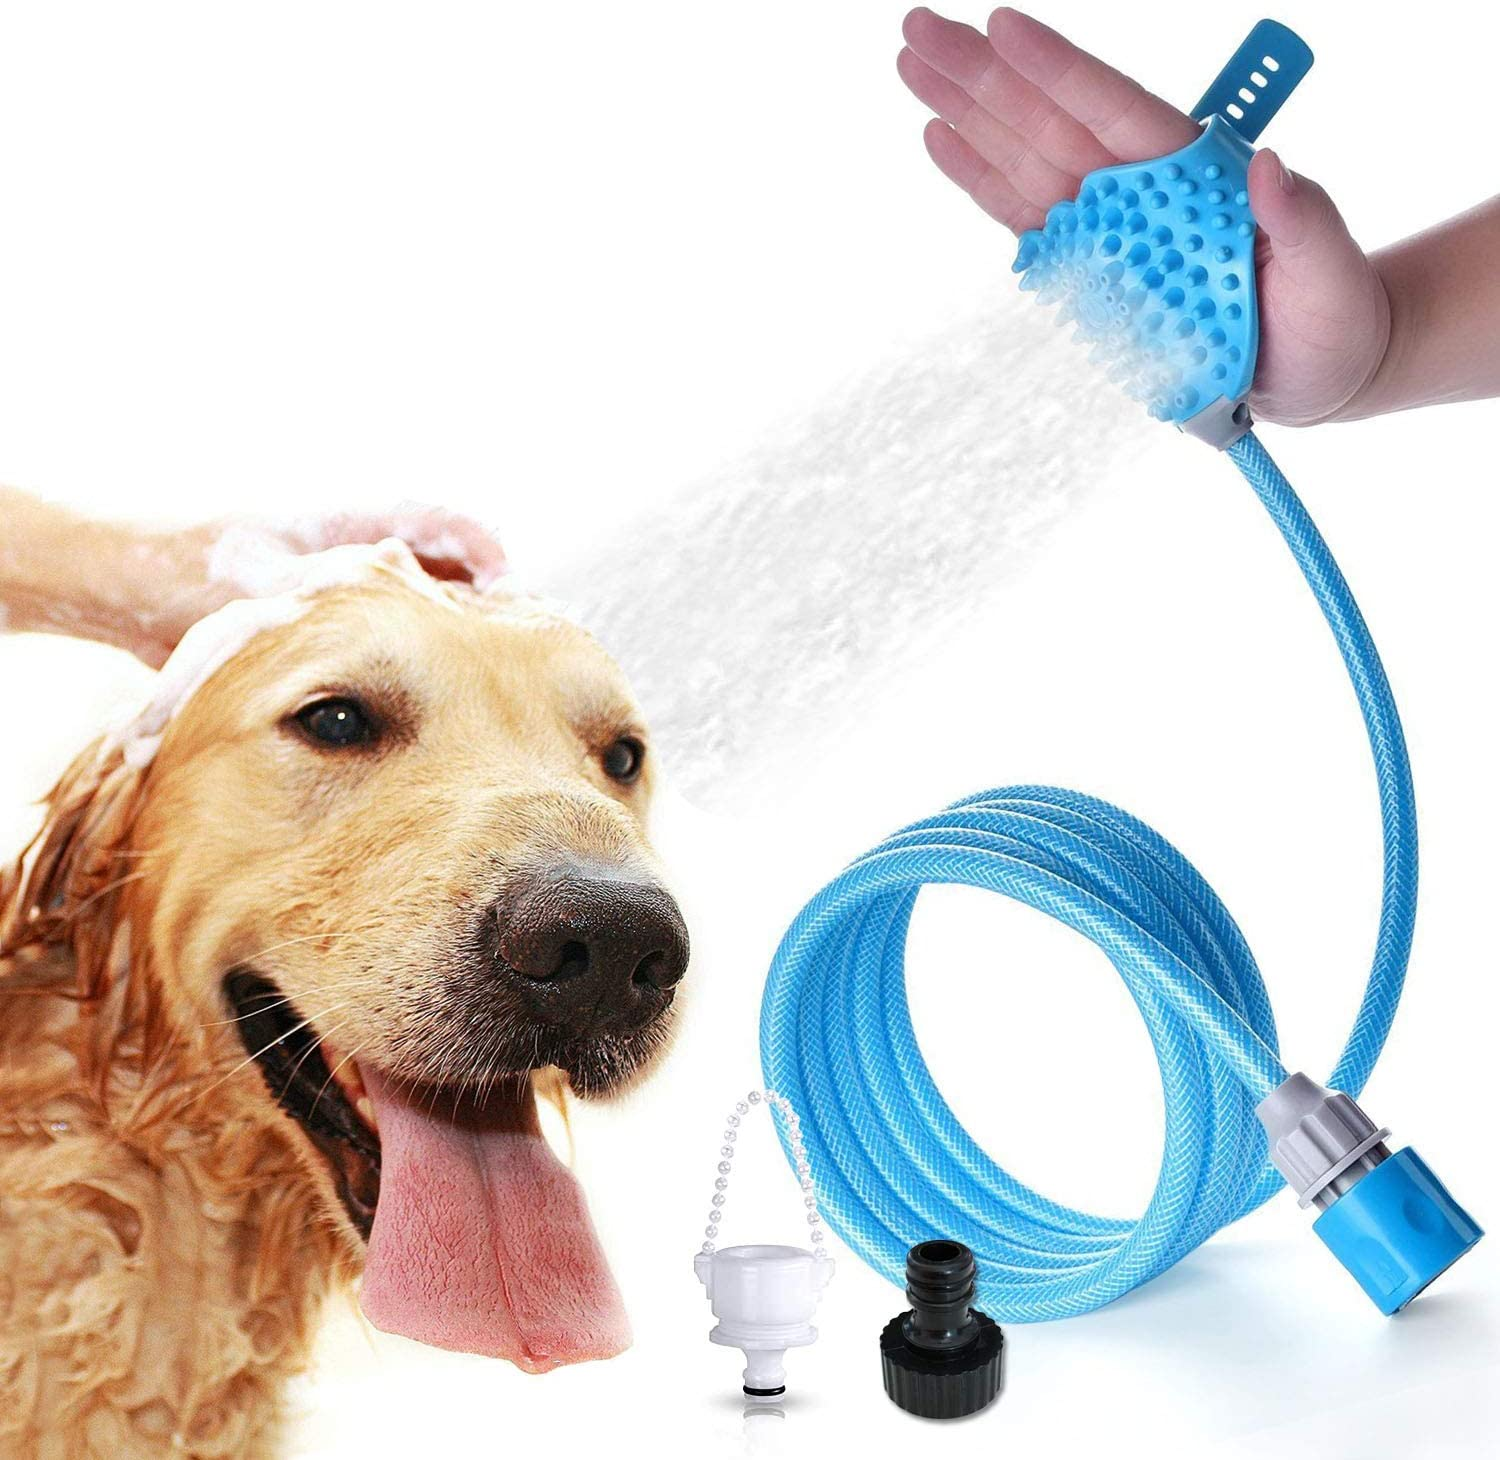 Pet Bathing Shower Sprayer Massage Scrubber in-One Carry, Adjustable Handheld Grooming Shower Head Brush for Bath Tub & Outdoor Garden Use with 2 Hose Faucet Adapter, Blue